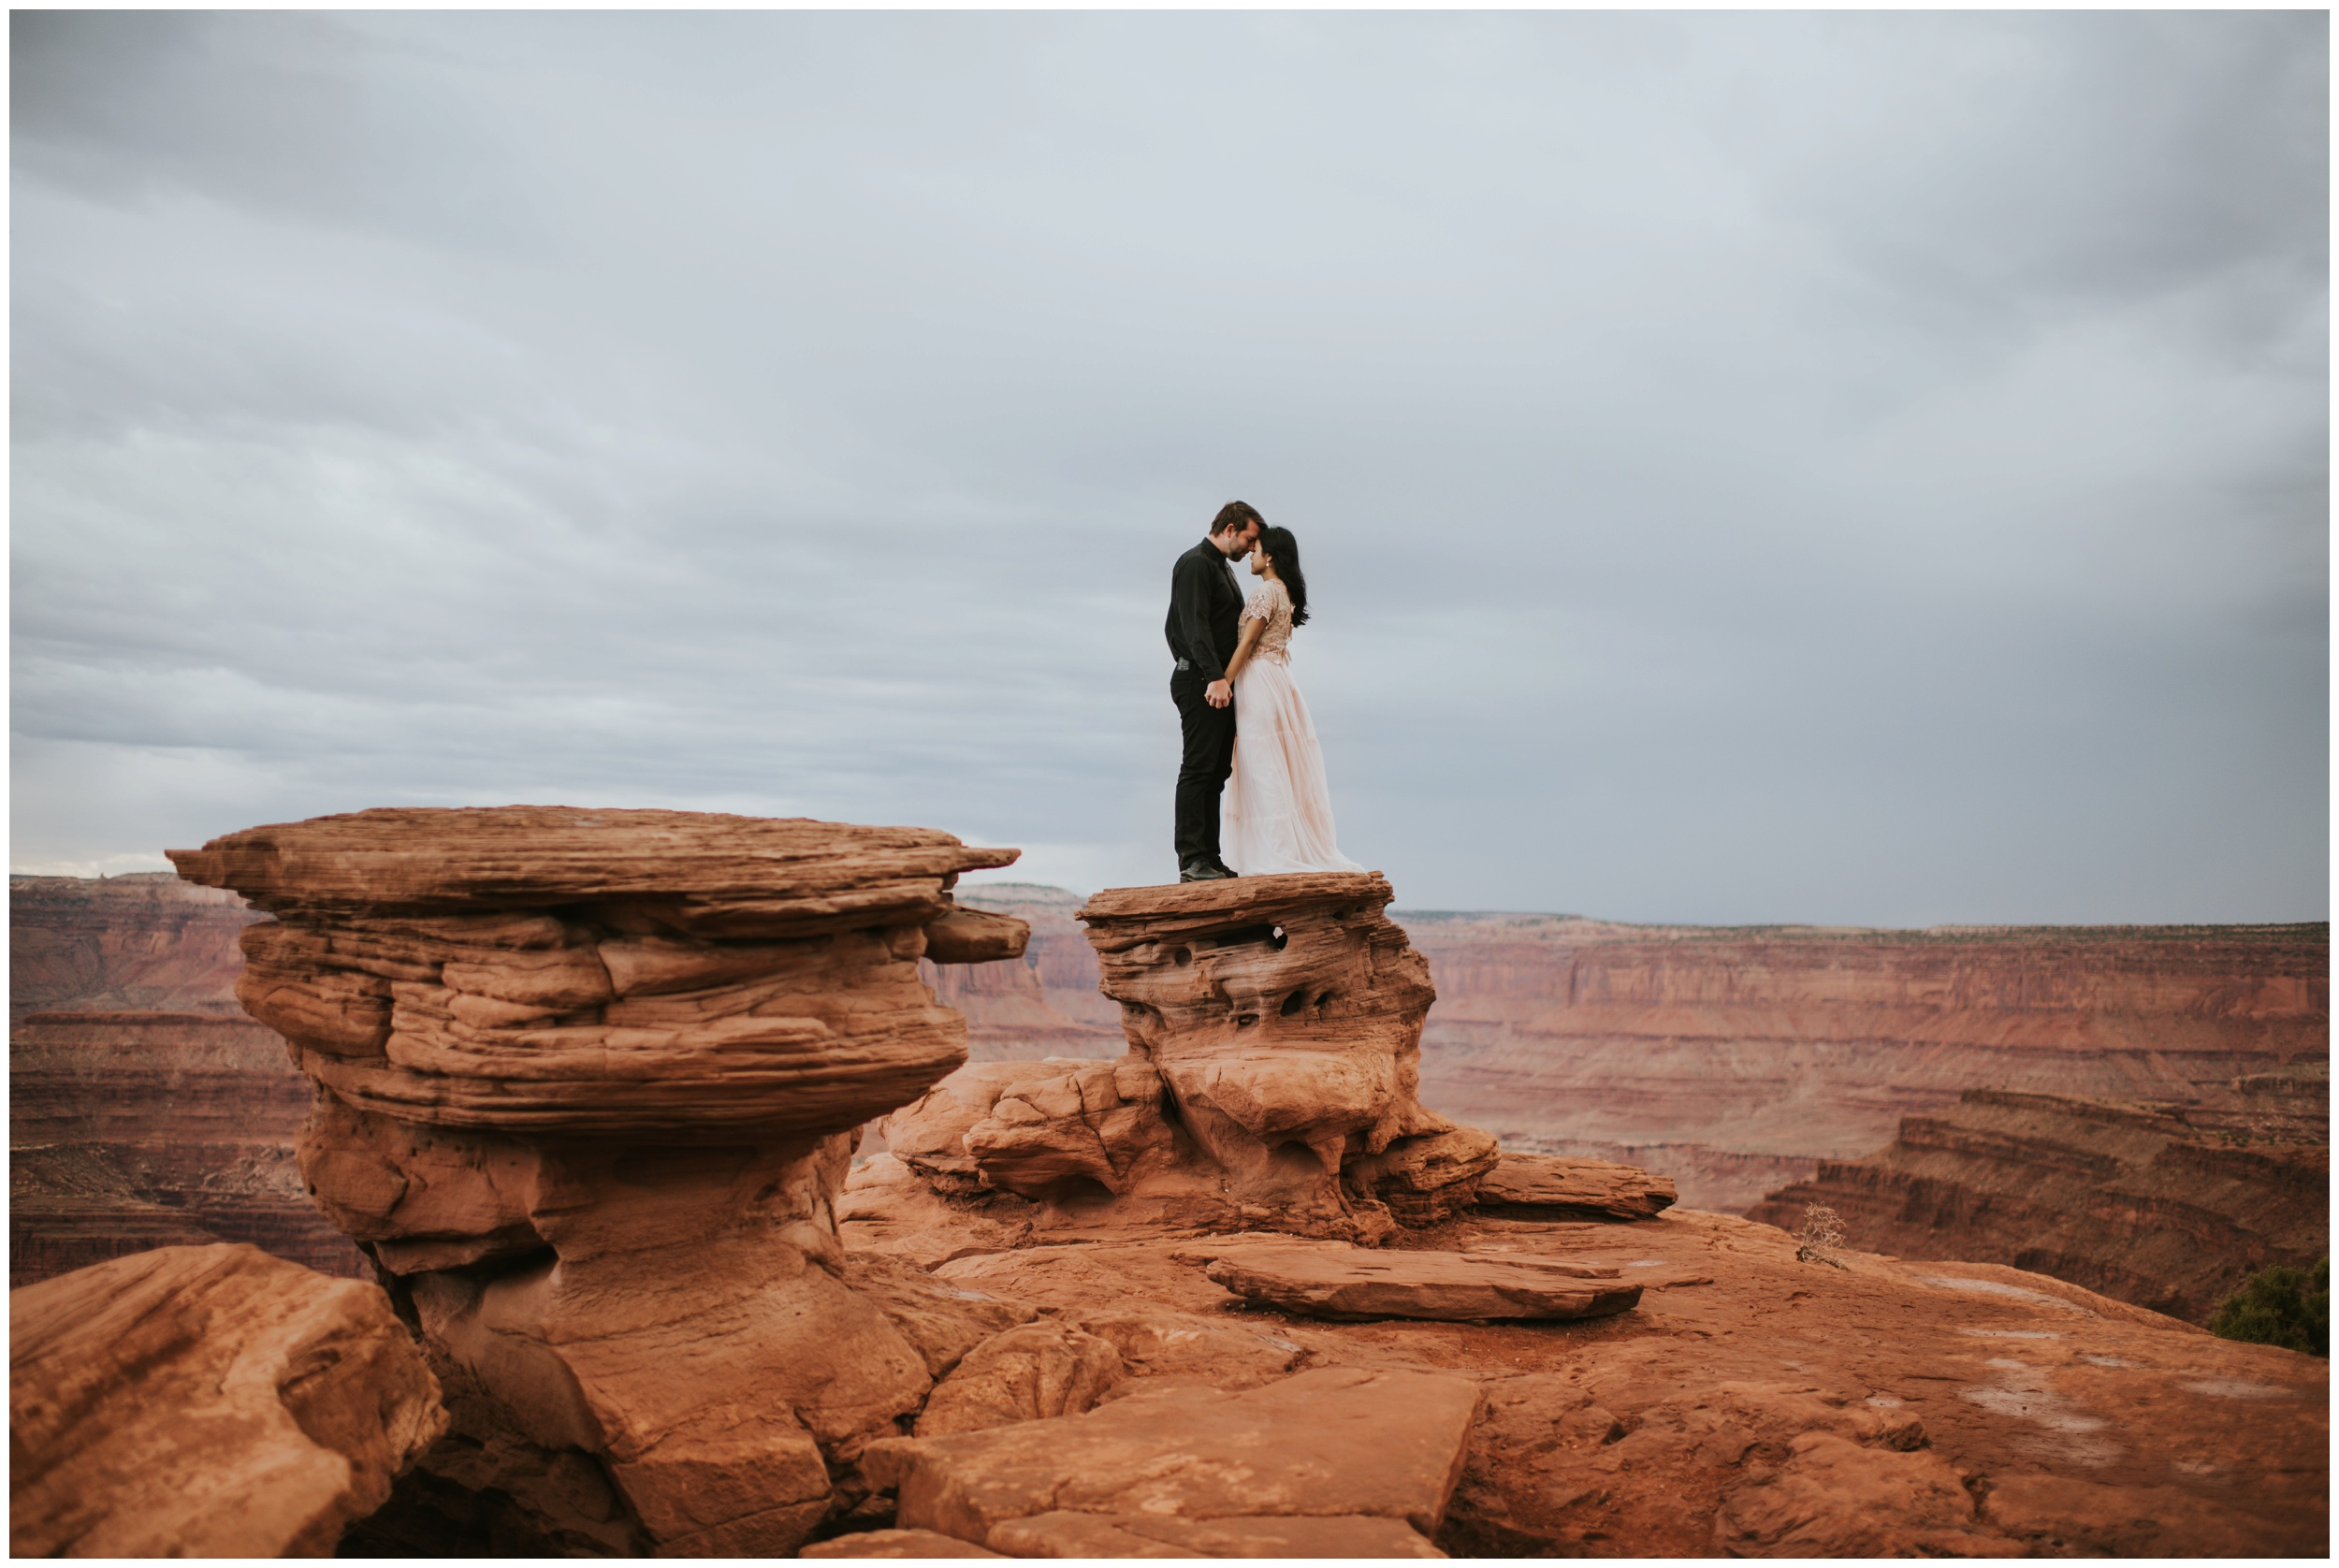 Beautiful landscape portrait of couple eloping at Dead Horse Point | Elopement Photographer www.riversandroadsphotography.com